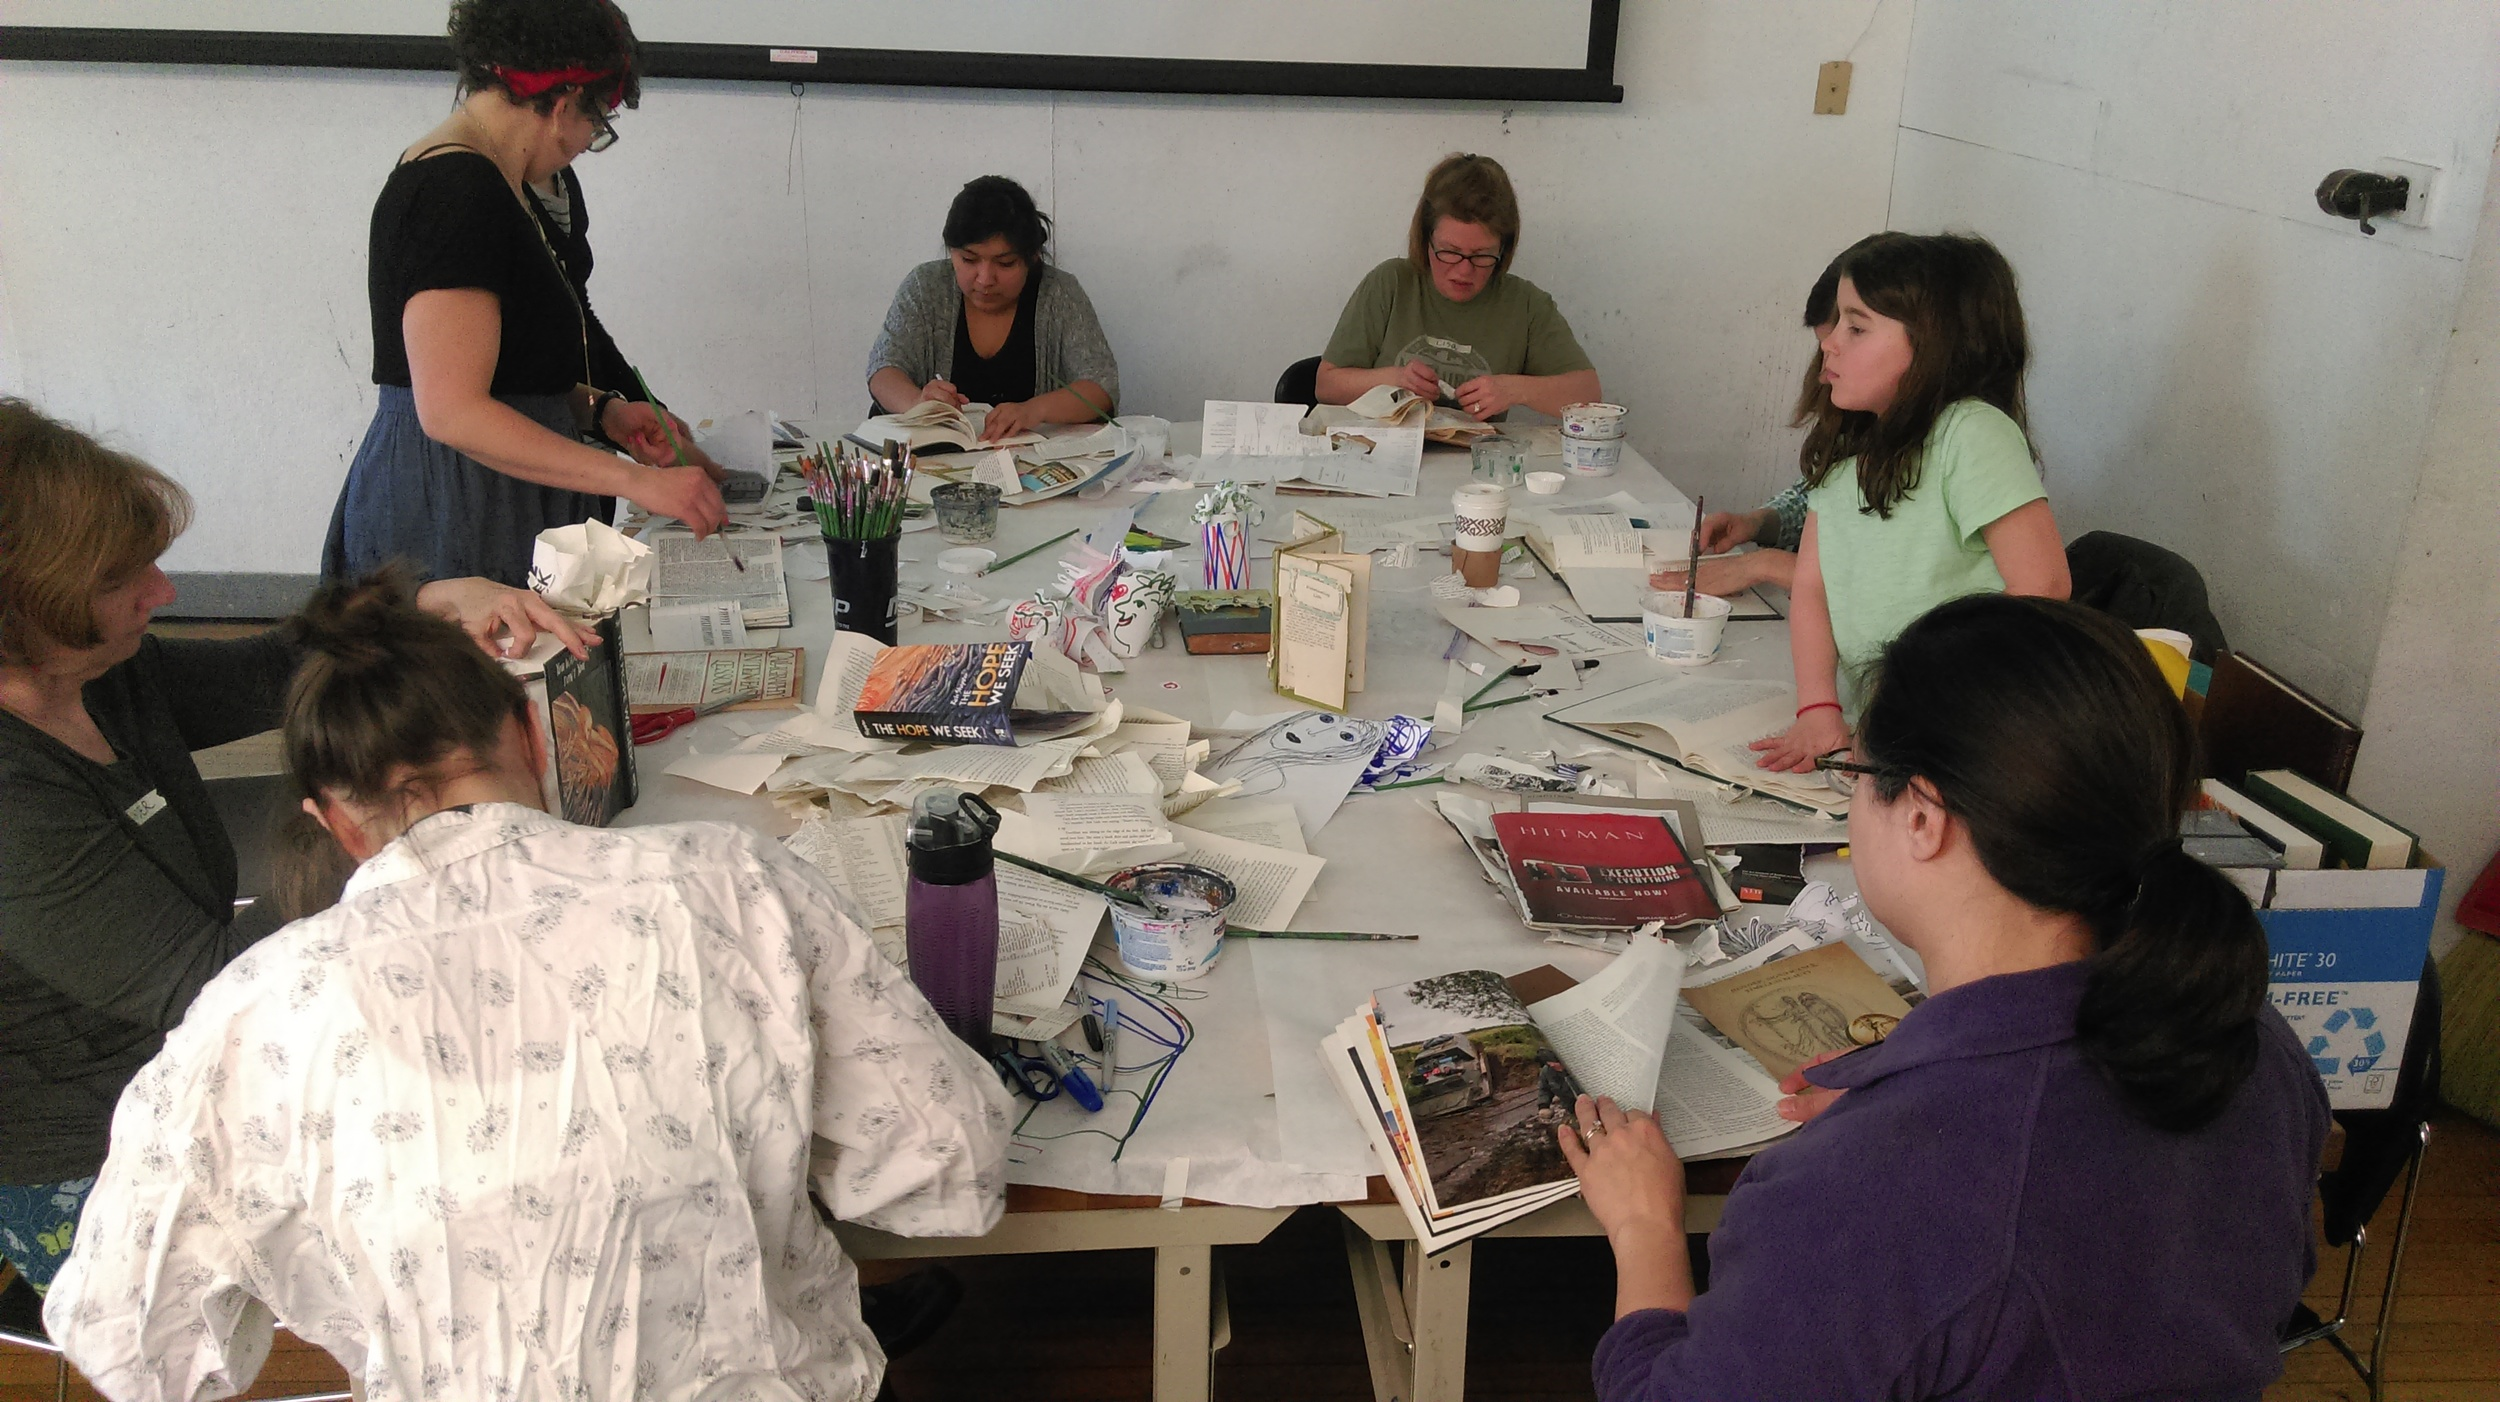 My students are hard at work making their own artist books.